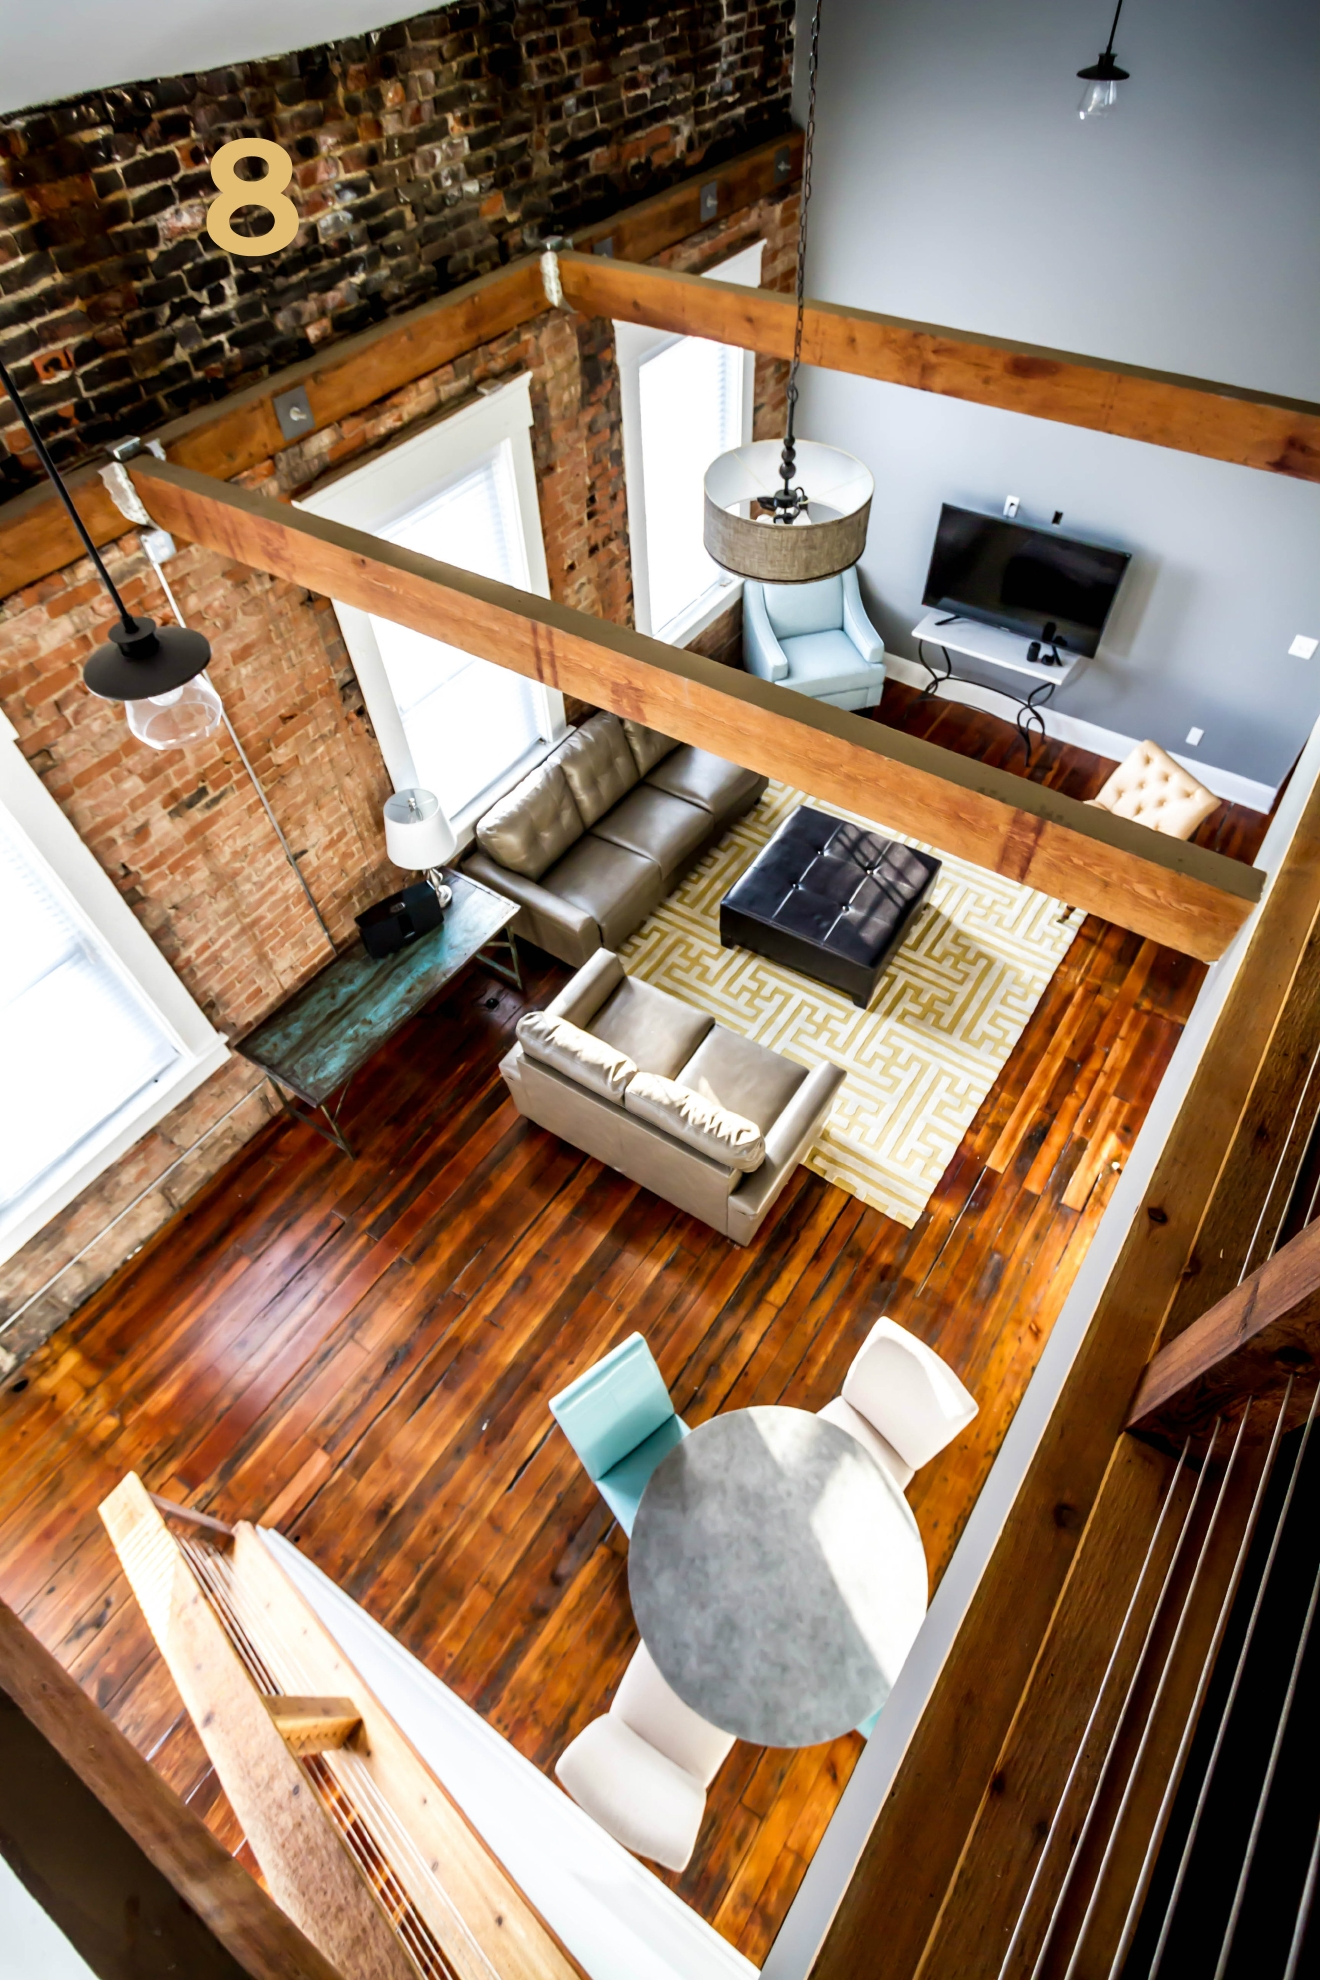 #8 - This gorgeous loft space has been rented out to the film crews on two recent Hollywood movies... movies starring the likes of John Travolta and (separately) Nicole Kidman. The place is called New Chi OTR and is located at 139 McMicken Ave. / Image: Amy Elisabeth Spasoff